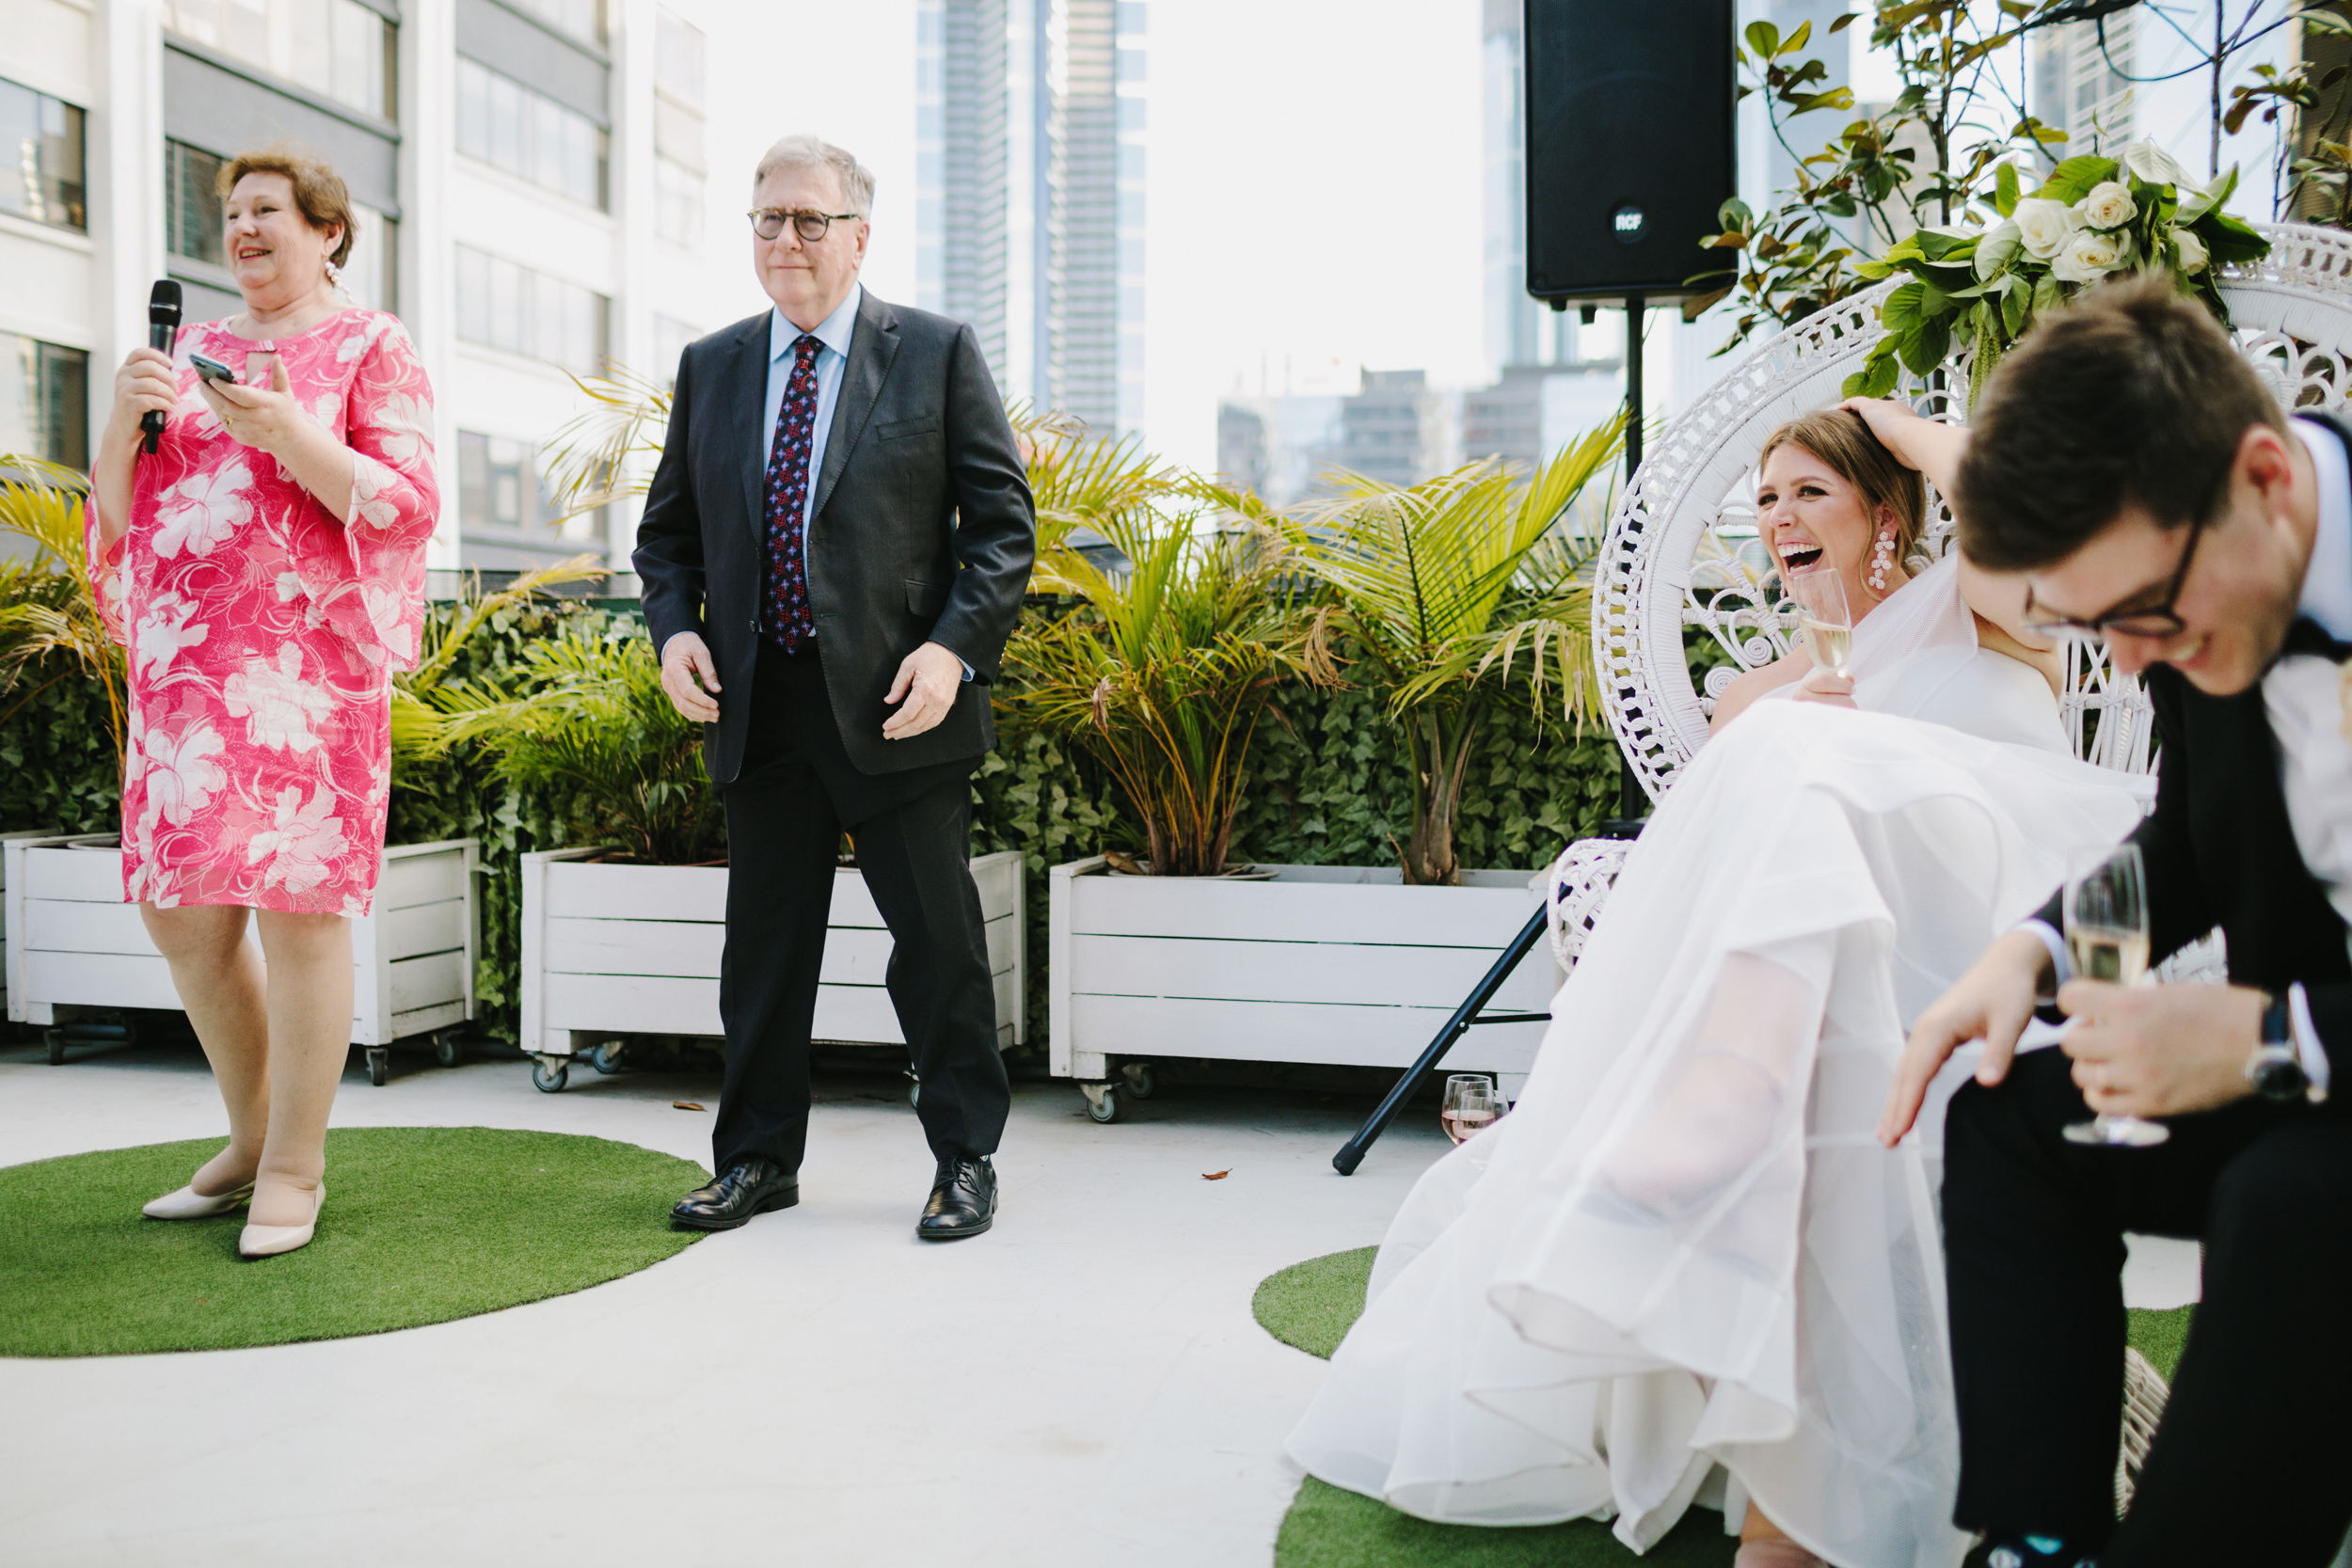 Melbourne_City_Rooftop_Wedding_Tyson_Brigette104.JPG